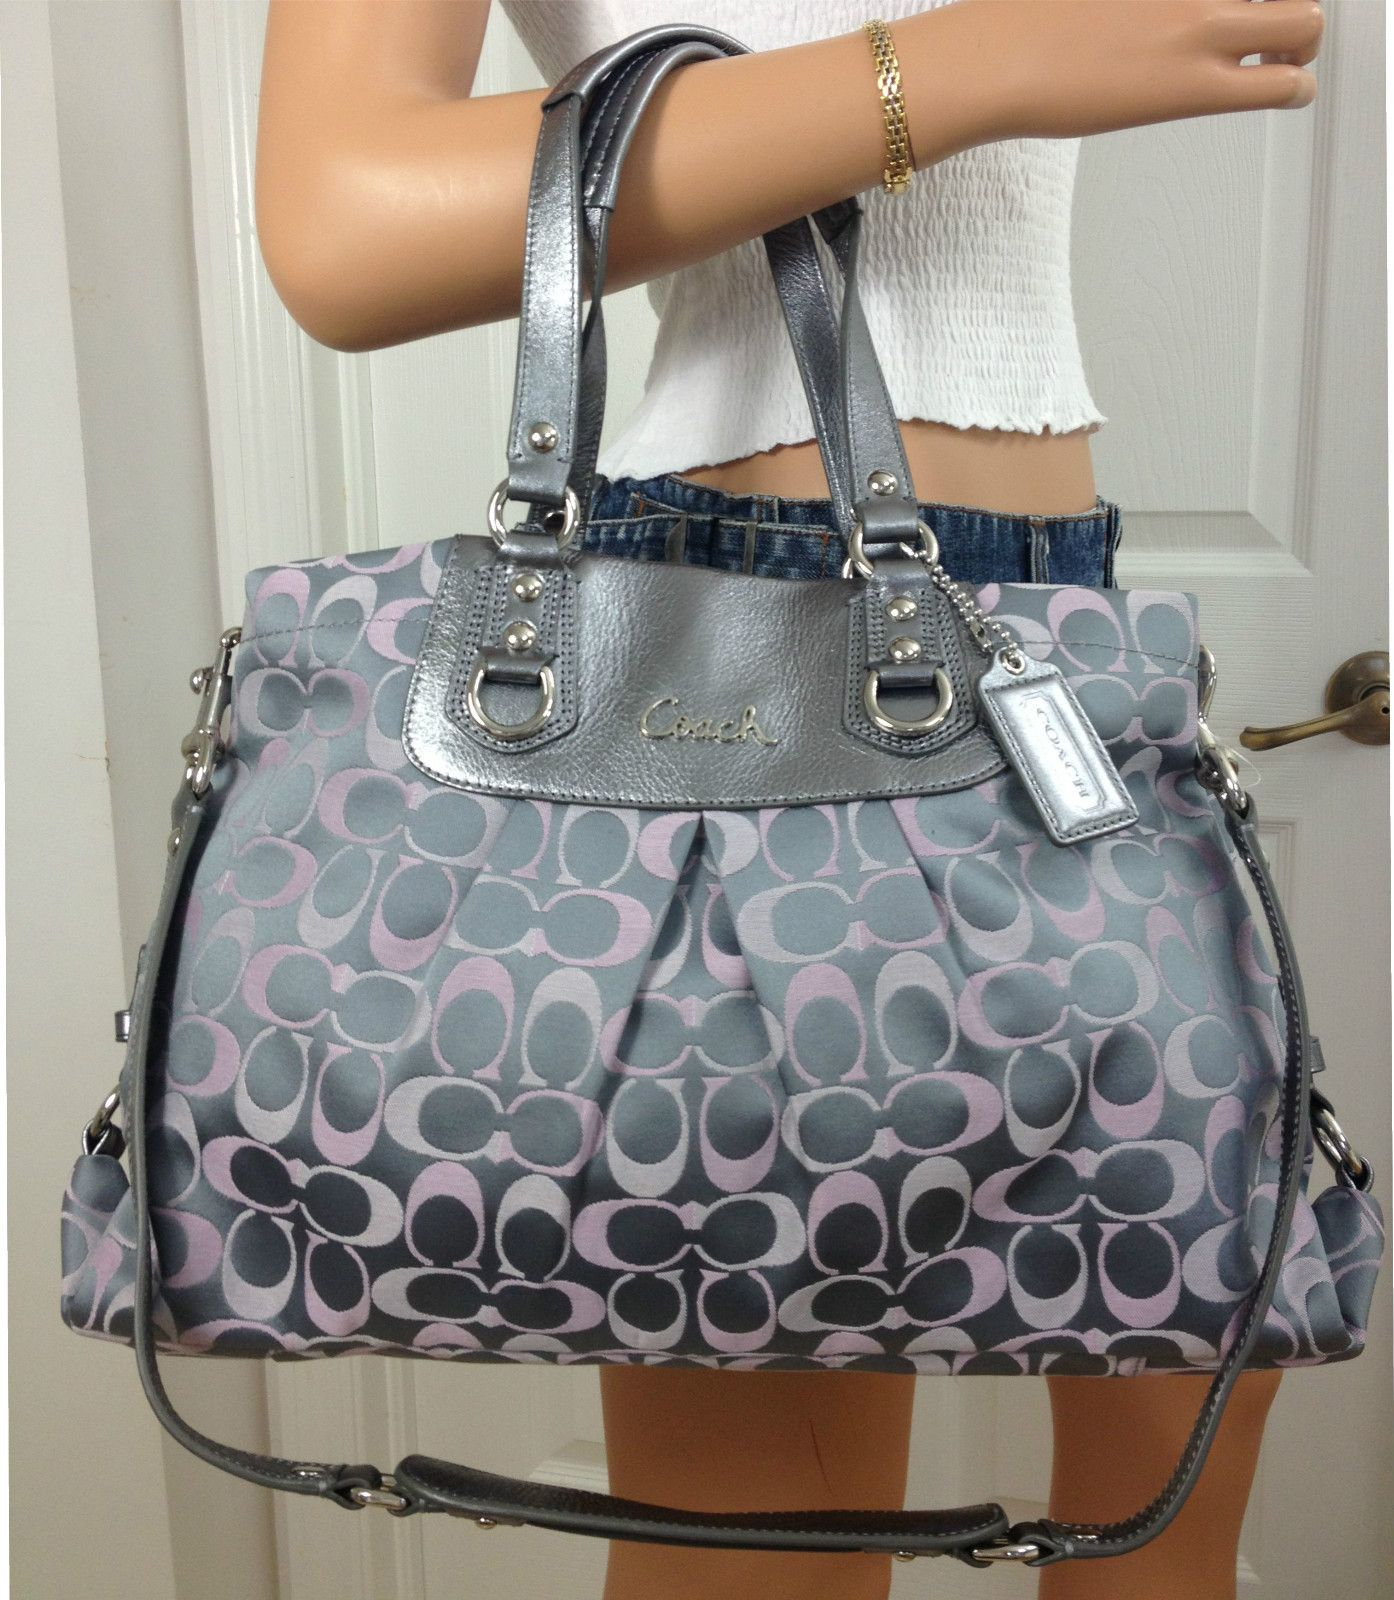 Find great deals on eBay for big purses. Shop with confidence.